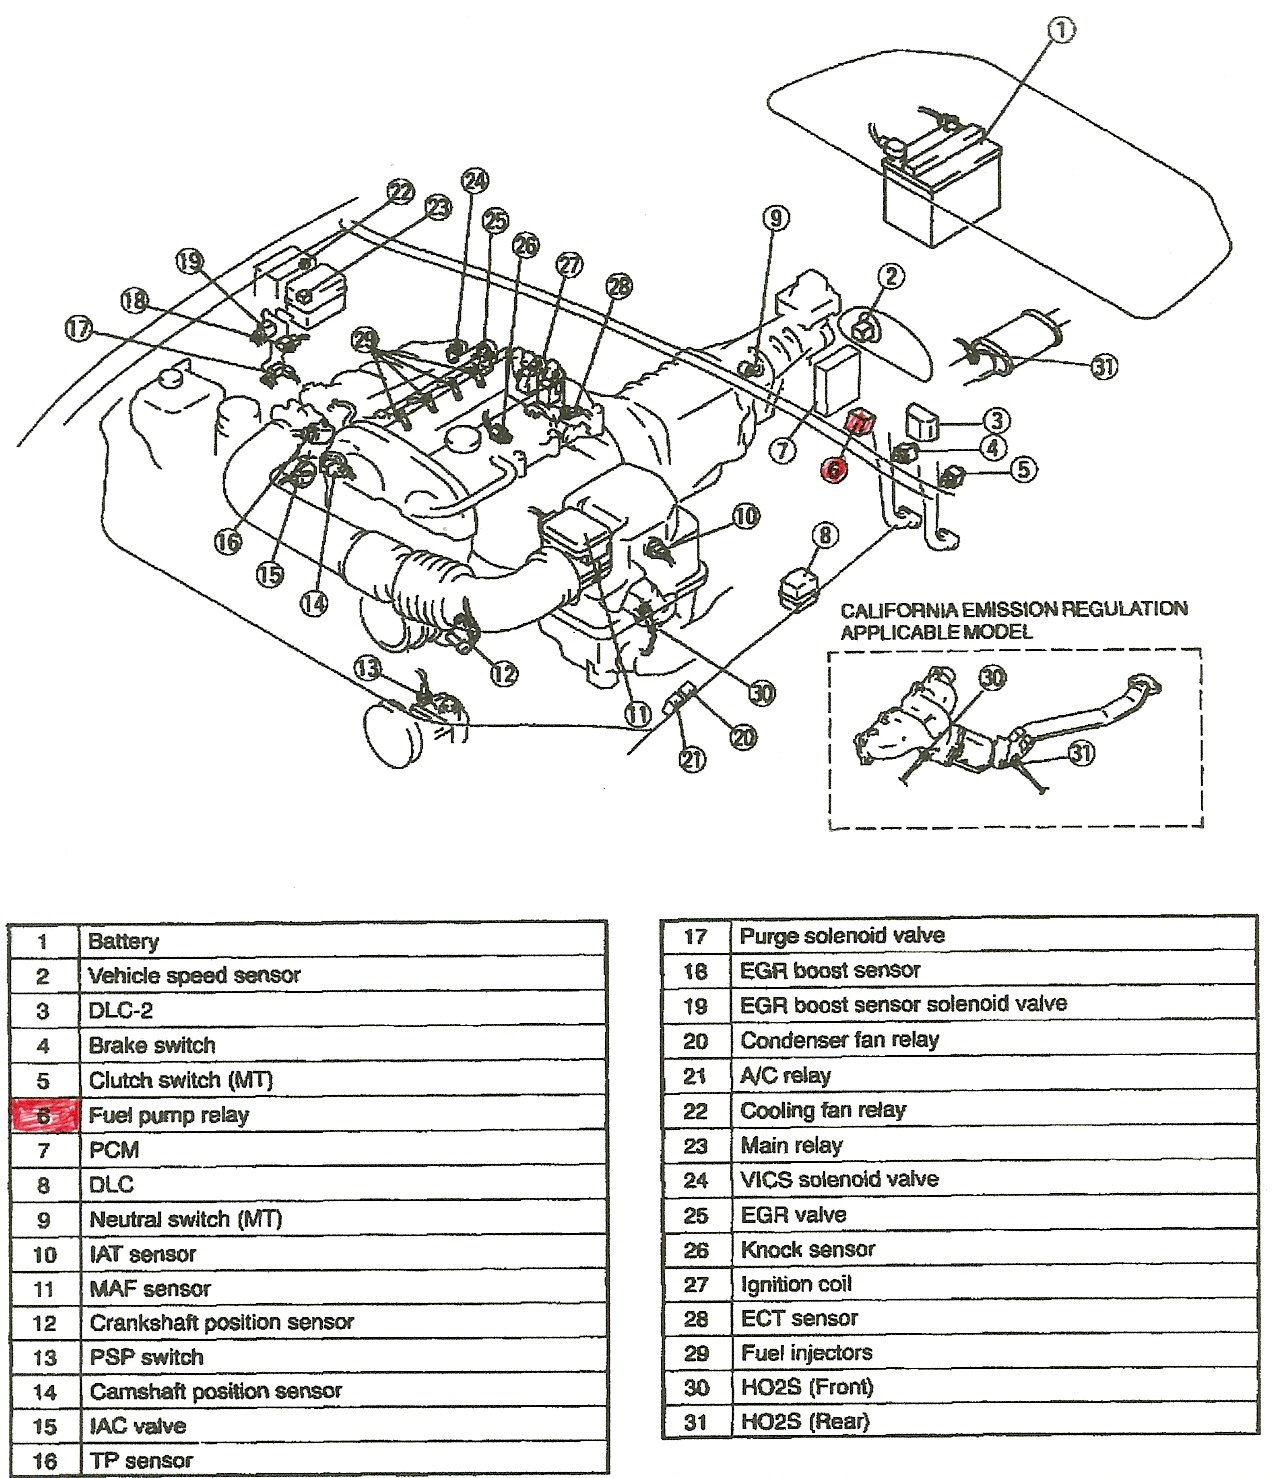 Chevy Silverado 1500 V8 Engine Diagram furthermore Saturn Vue Transmission Fluid Location together with 2005 Nissan Armada Starter Location moreover 98 Bmw Engine Diagram besides Saturn L300 2002 Spark Plug Location. on saturn sl2 parts diagram